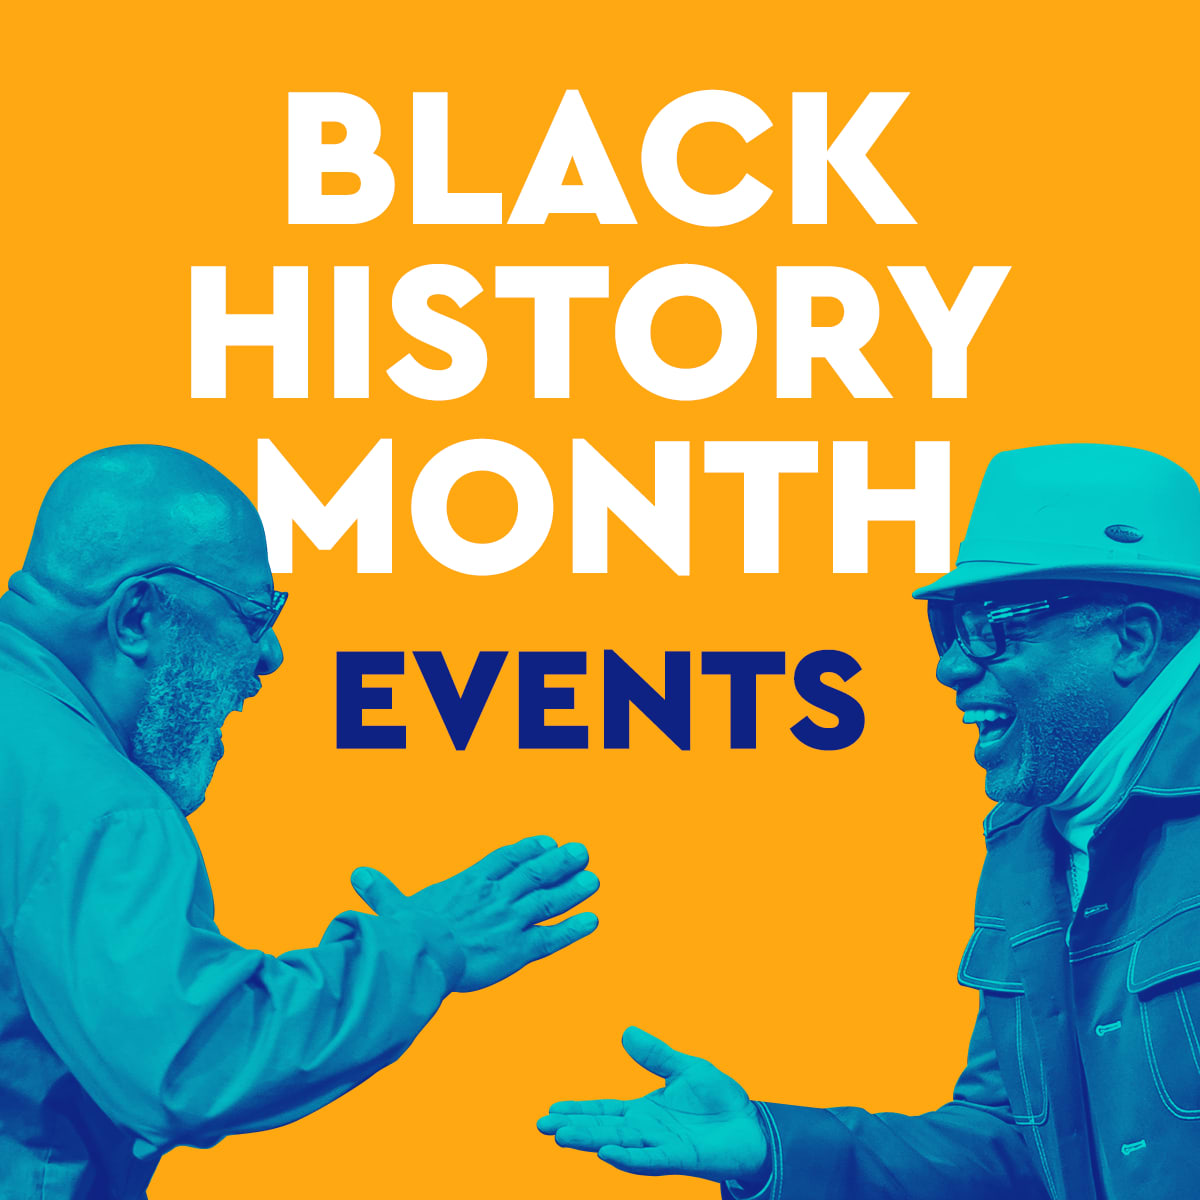 Image representing Black History Month Events